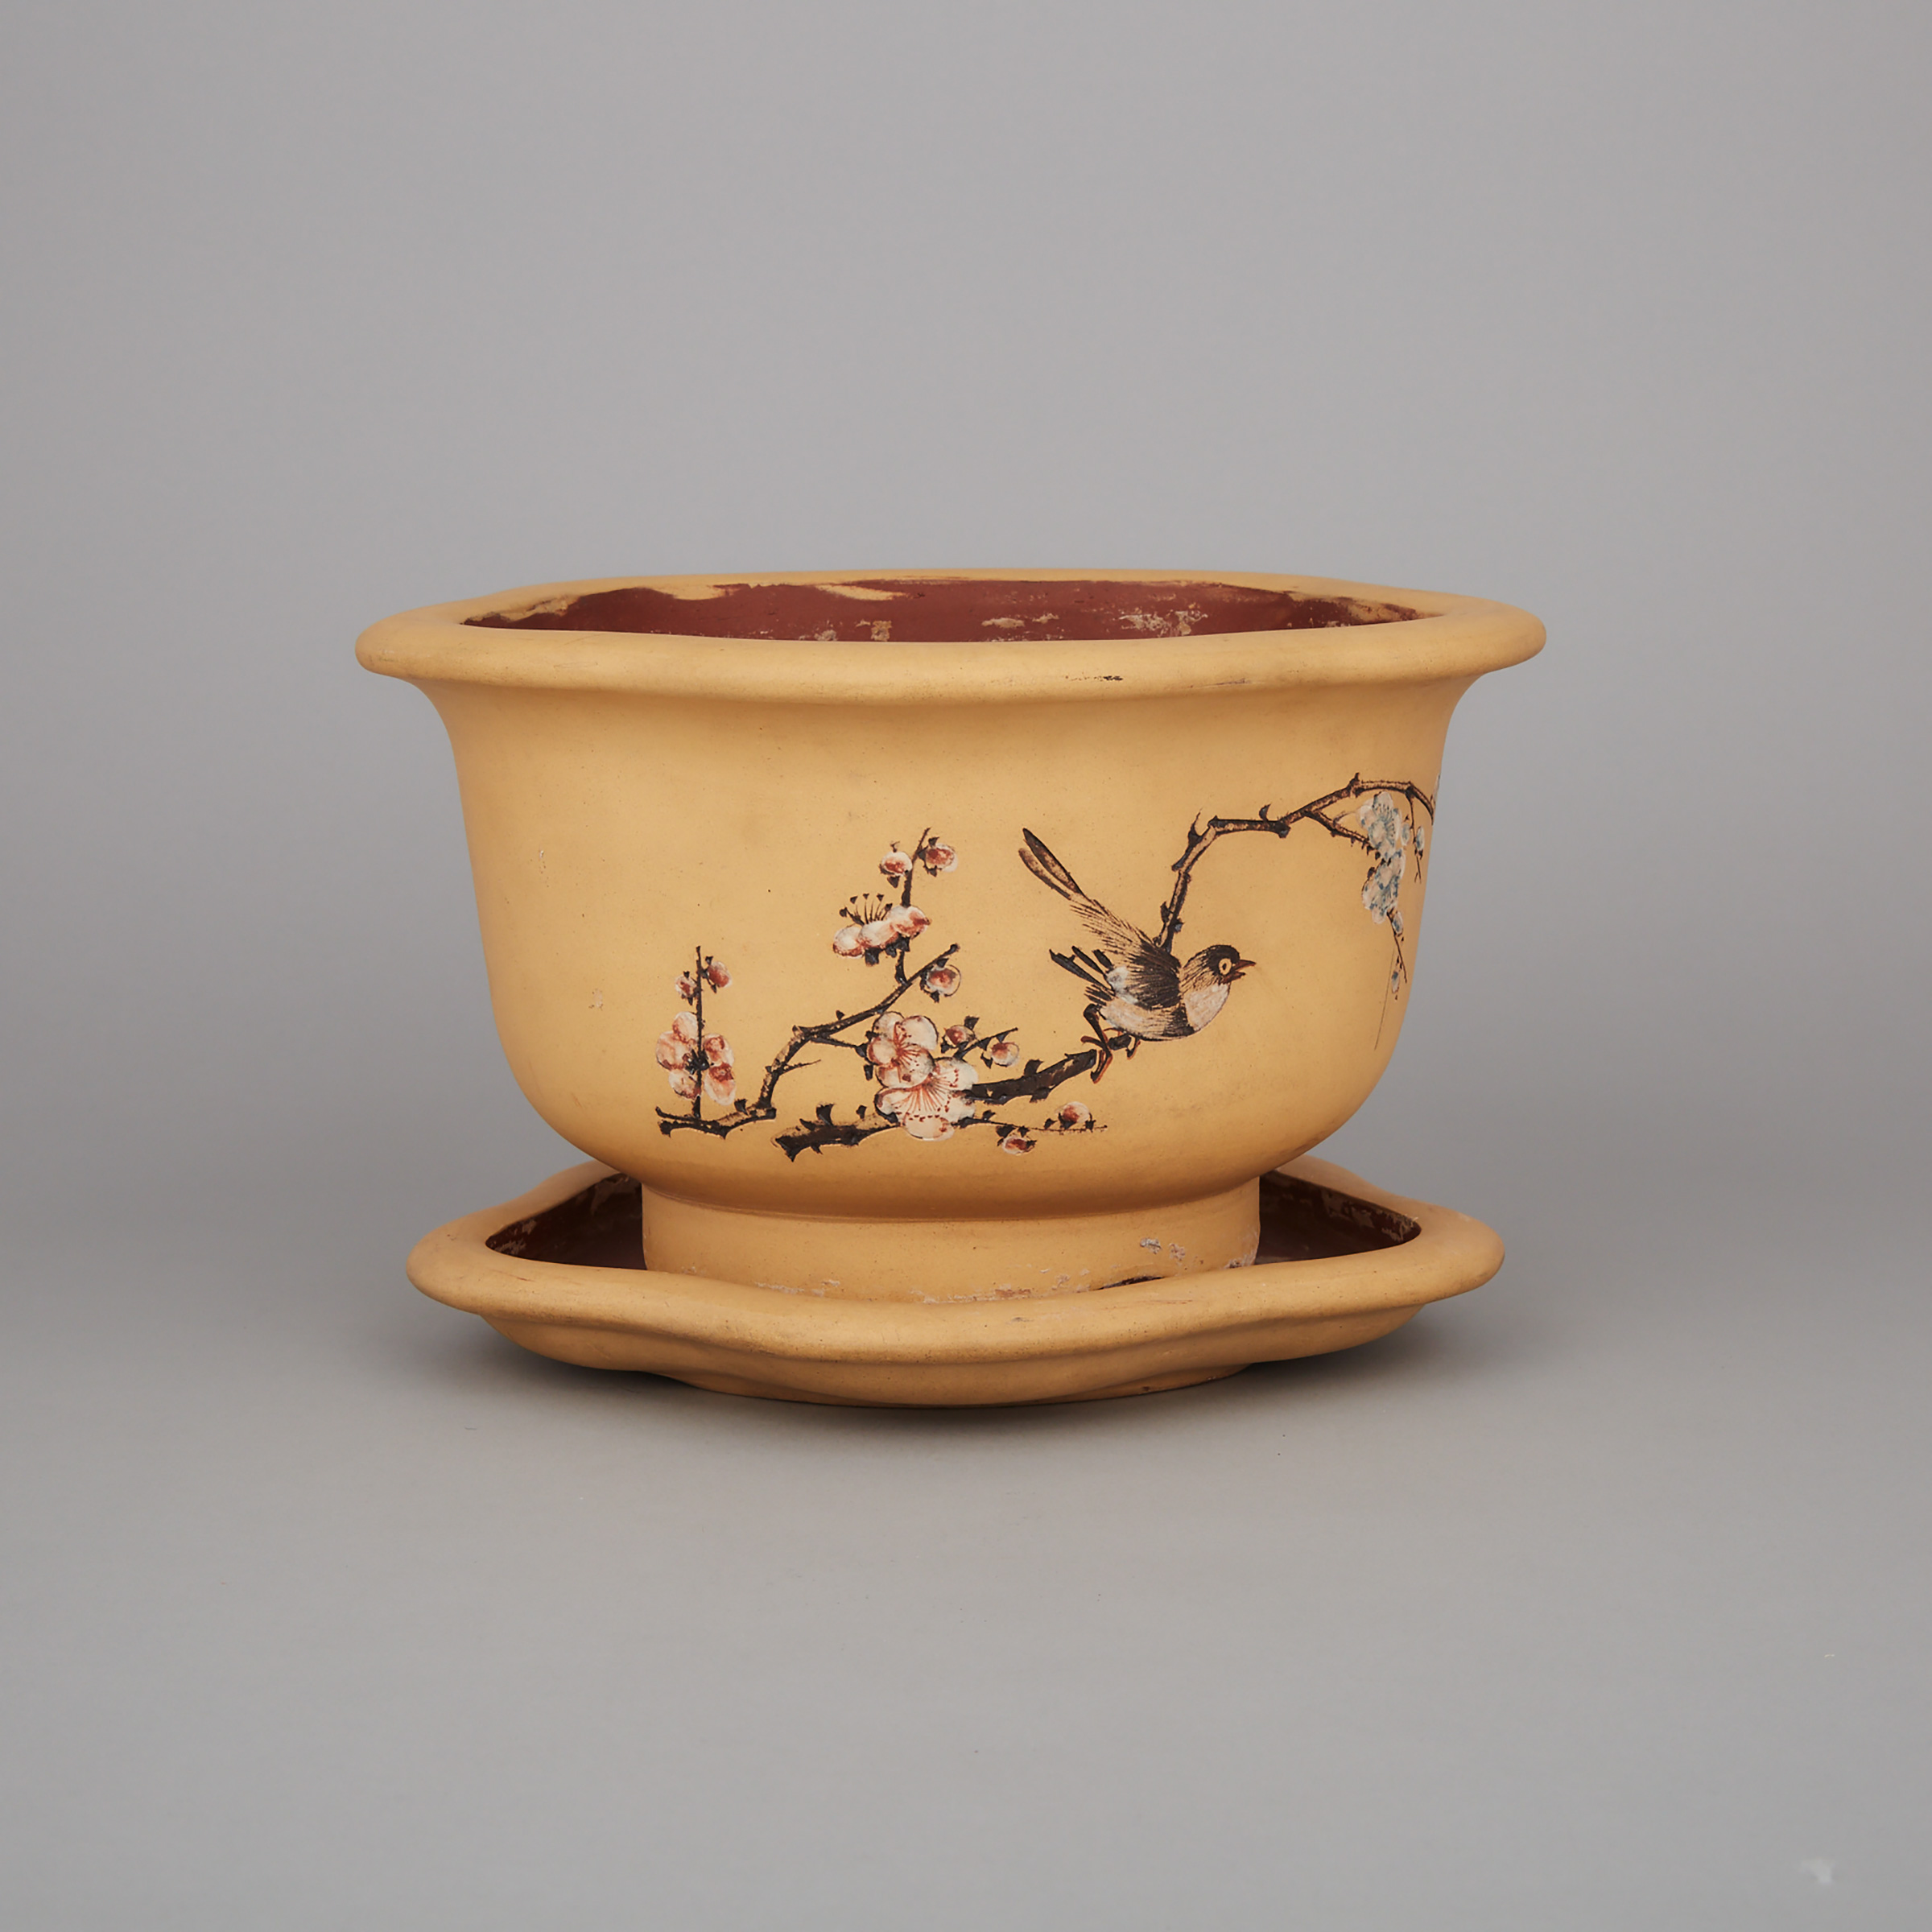 An Inscribed Yixing Stoneware Planter Pot and Stand